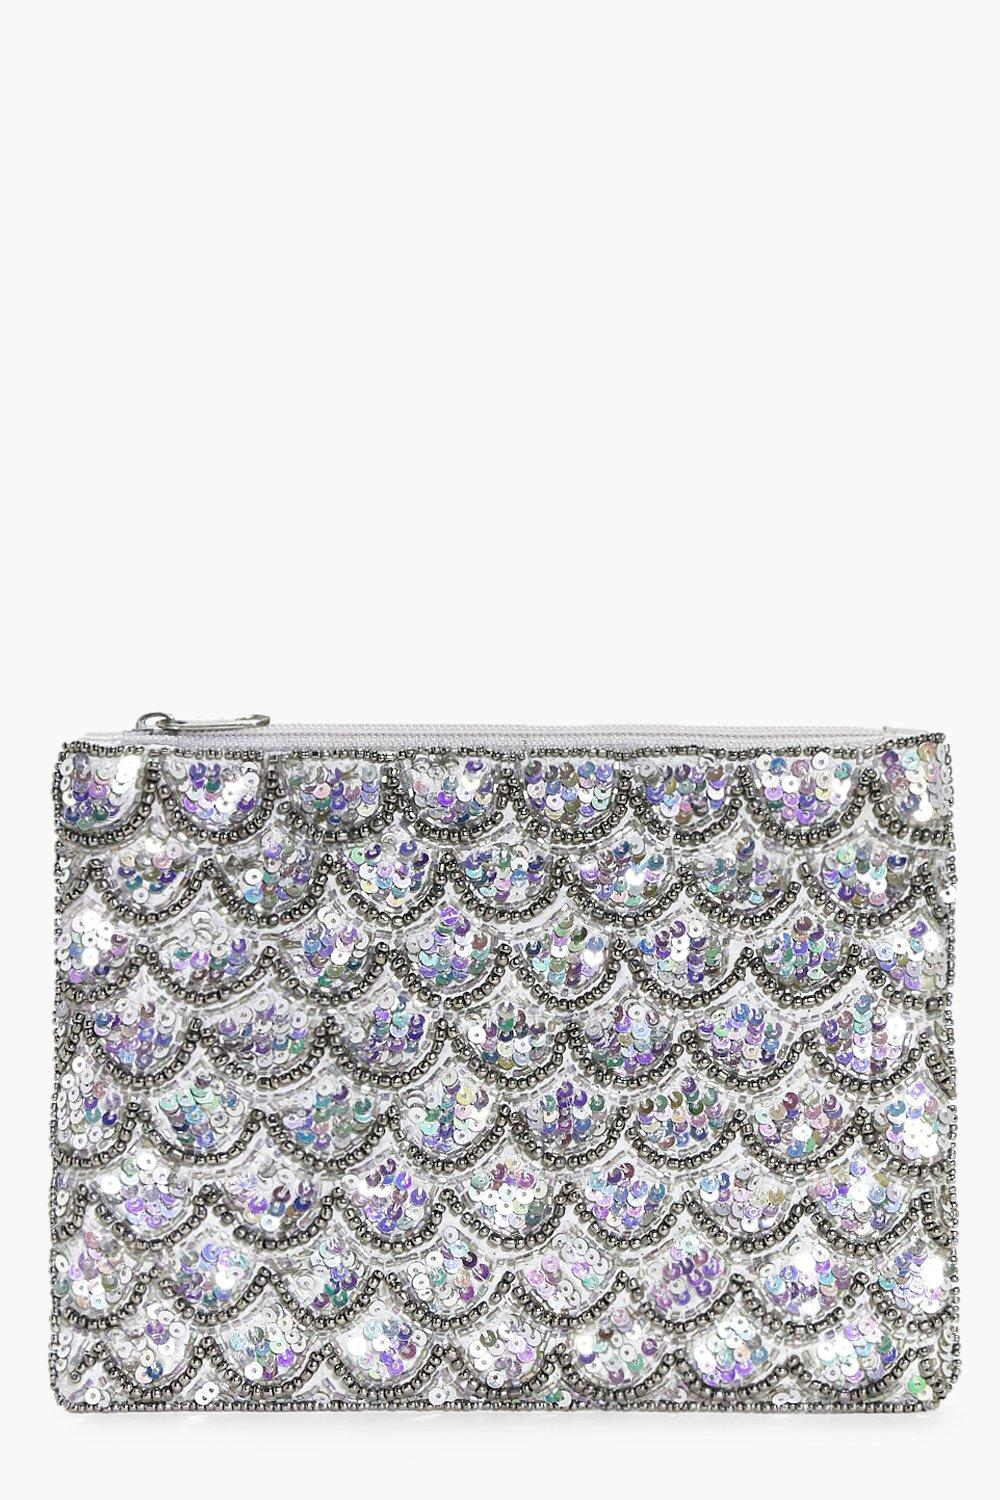 Alice Mermaid Embellished Clutch Bag